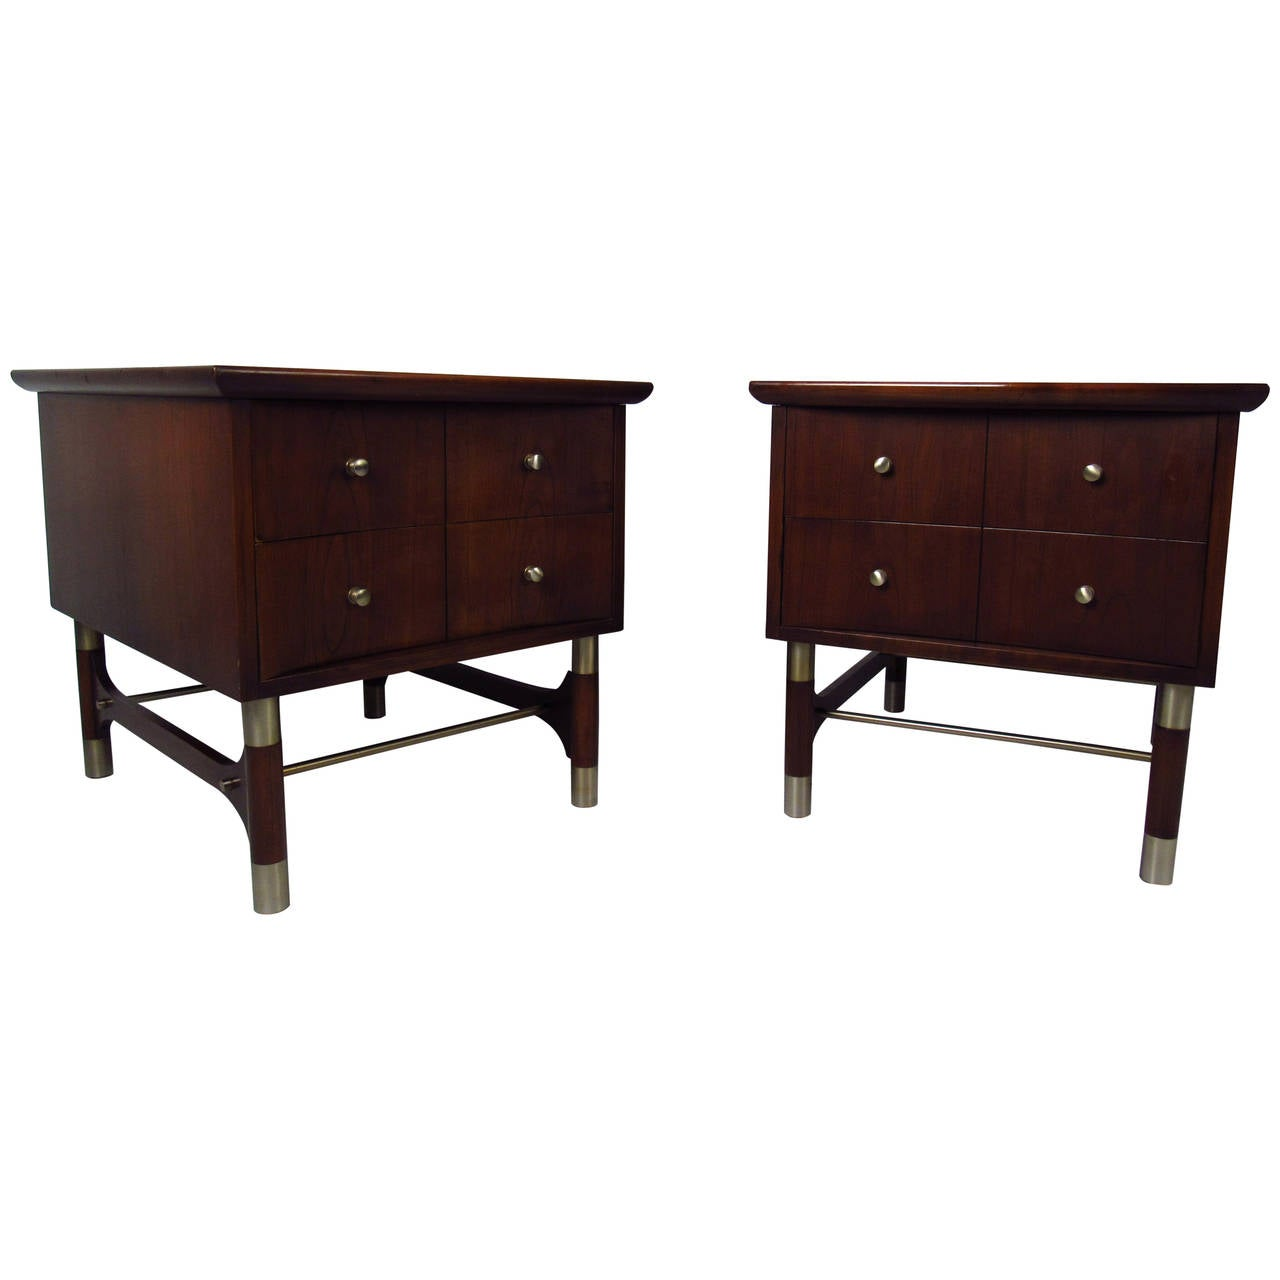 Pair of Mid Century TwoDrawer End Tables by Weiman Furniture at 1stdibs